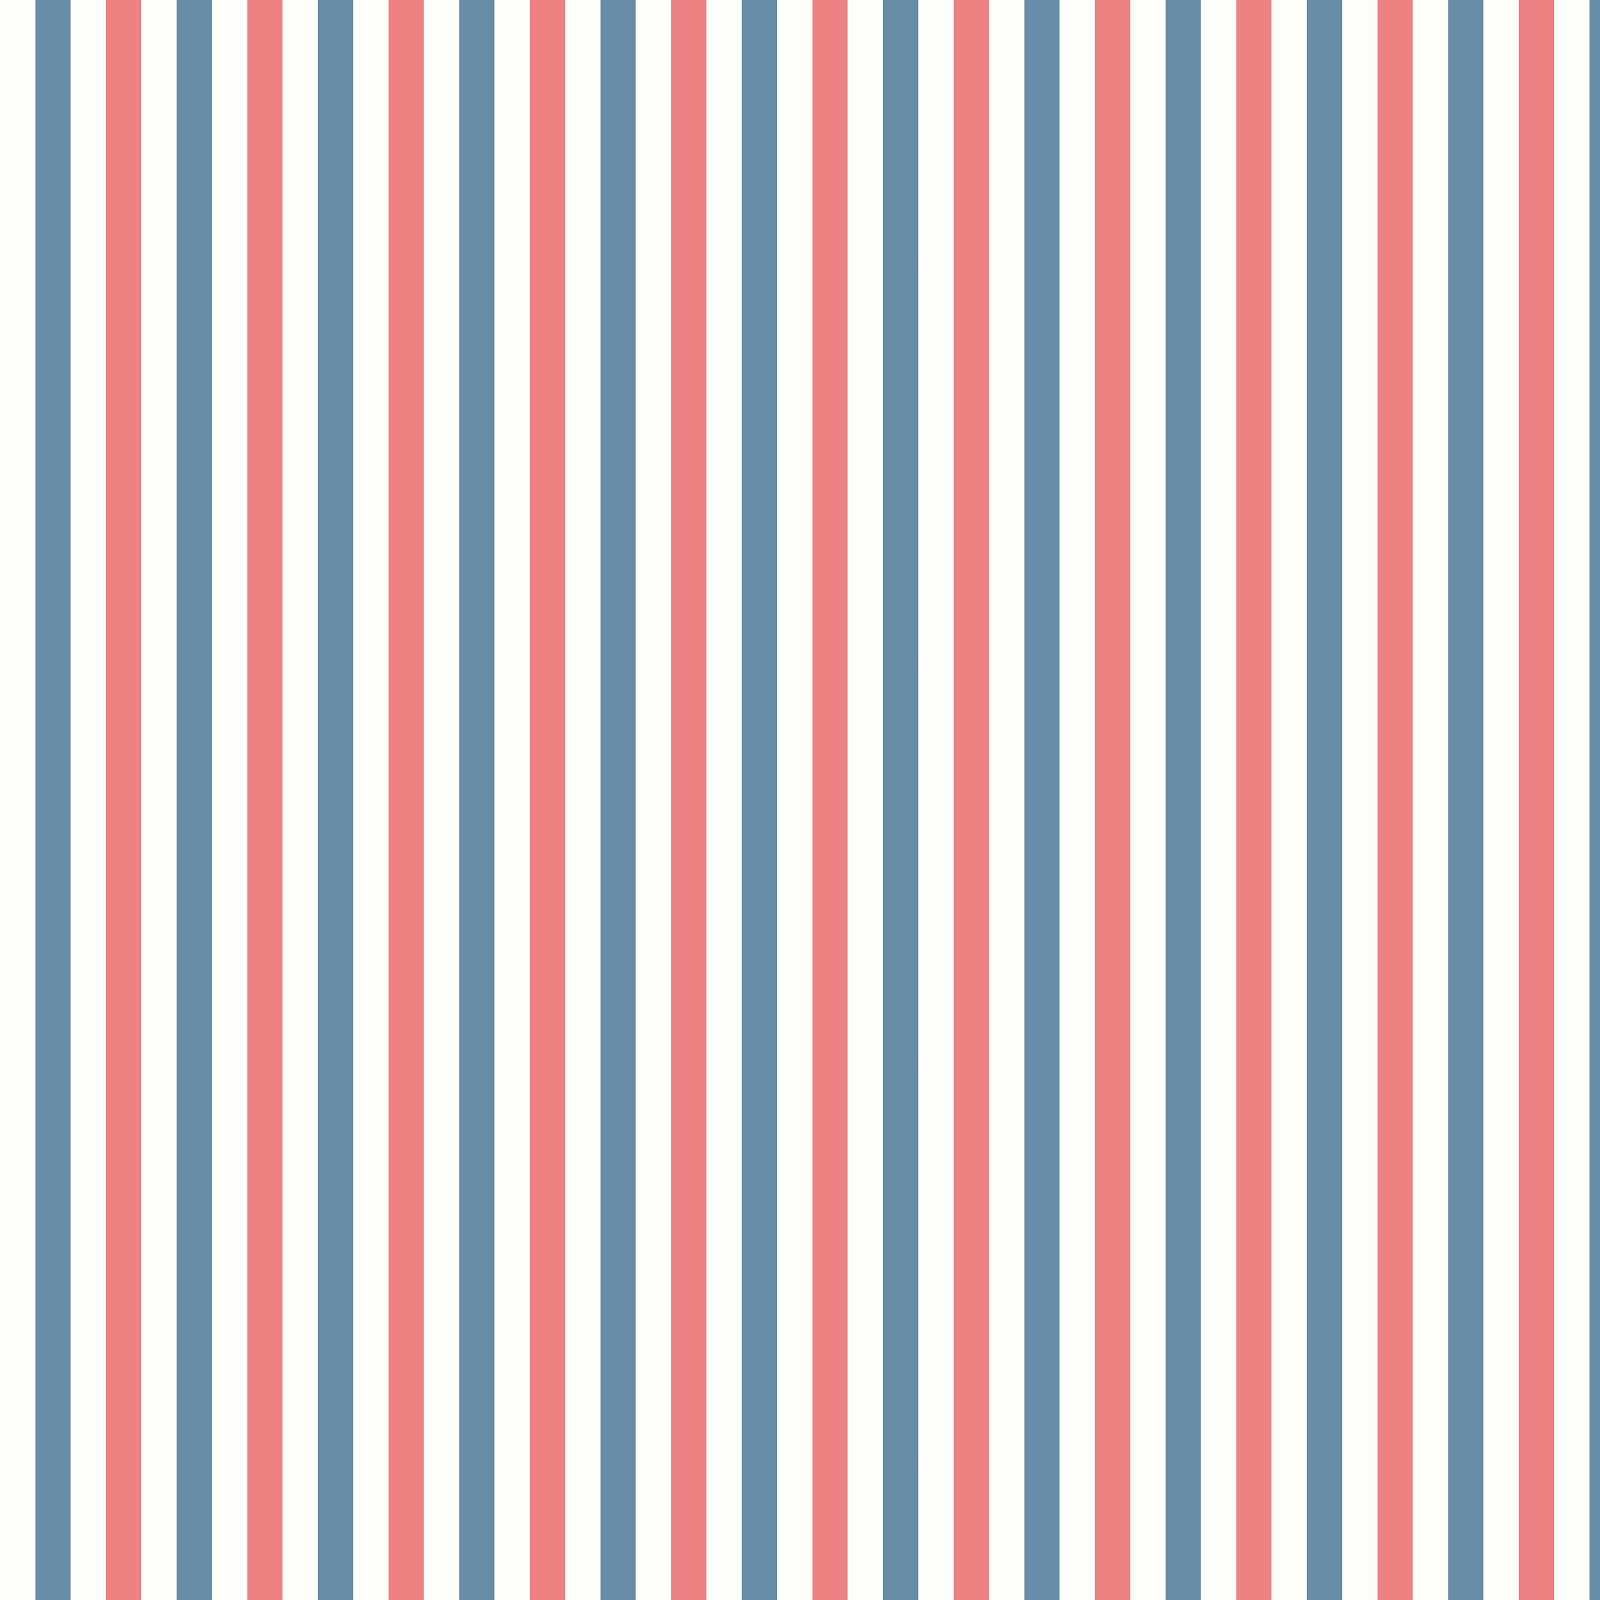 Blue Red And White Striped Wallpaper